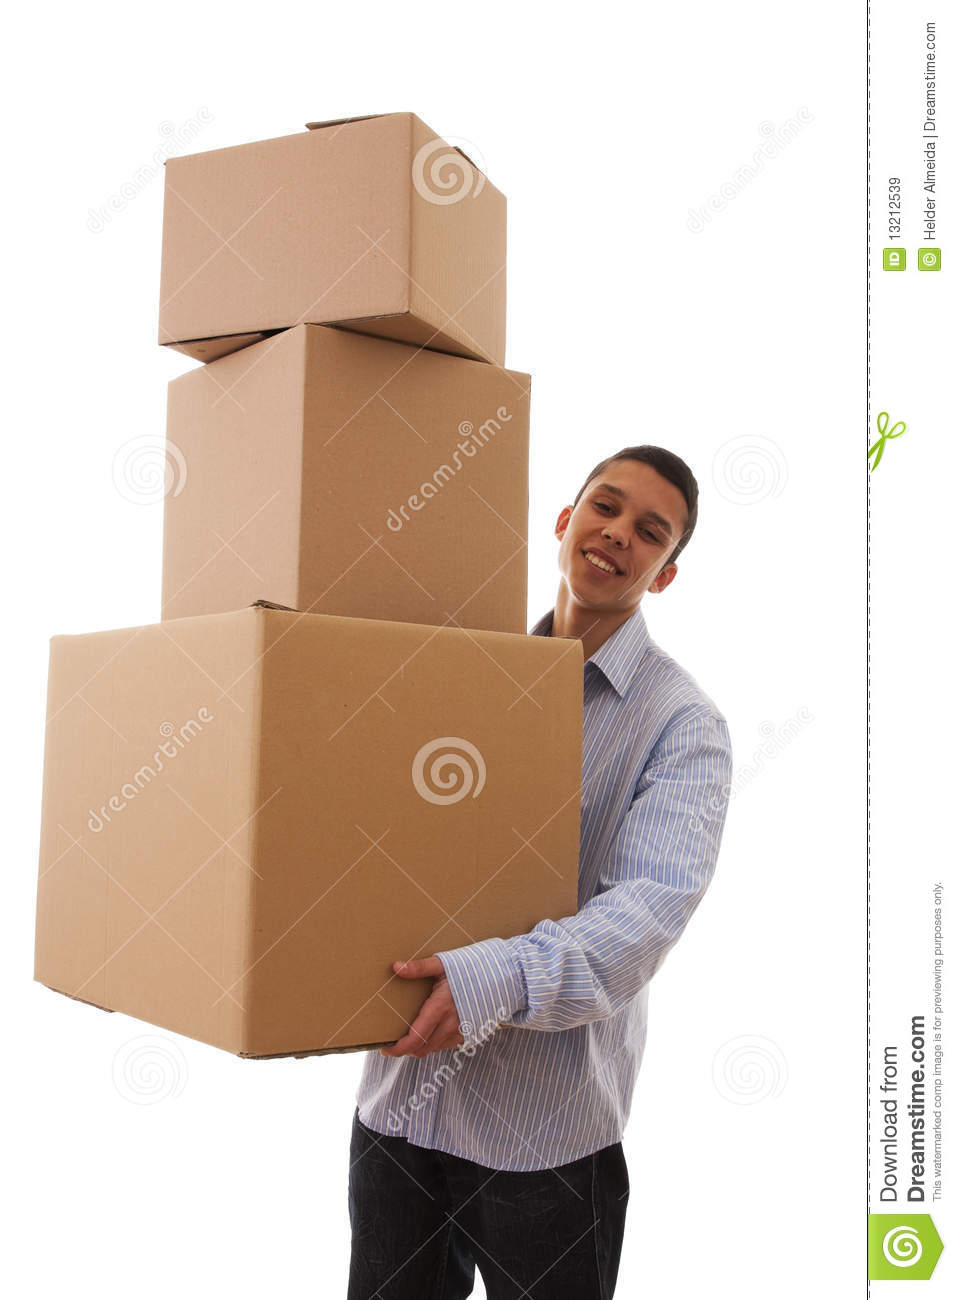 Delivery Man Clip Art Free